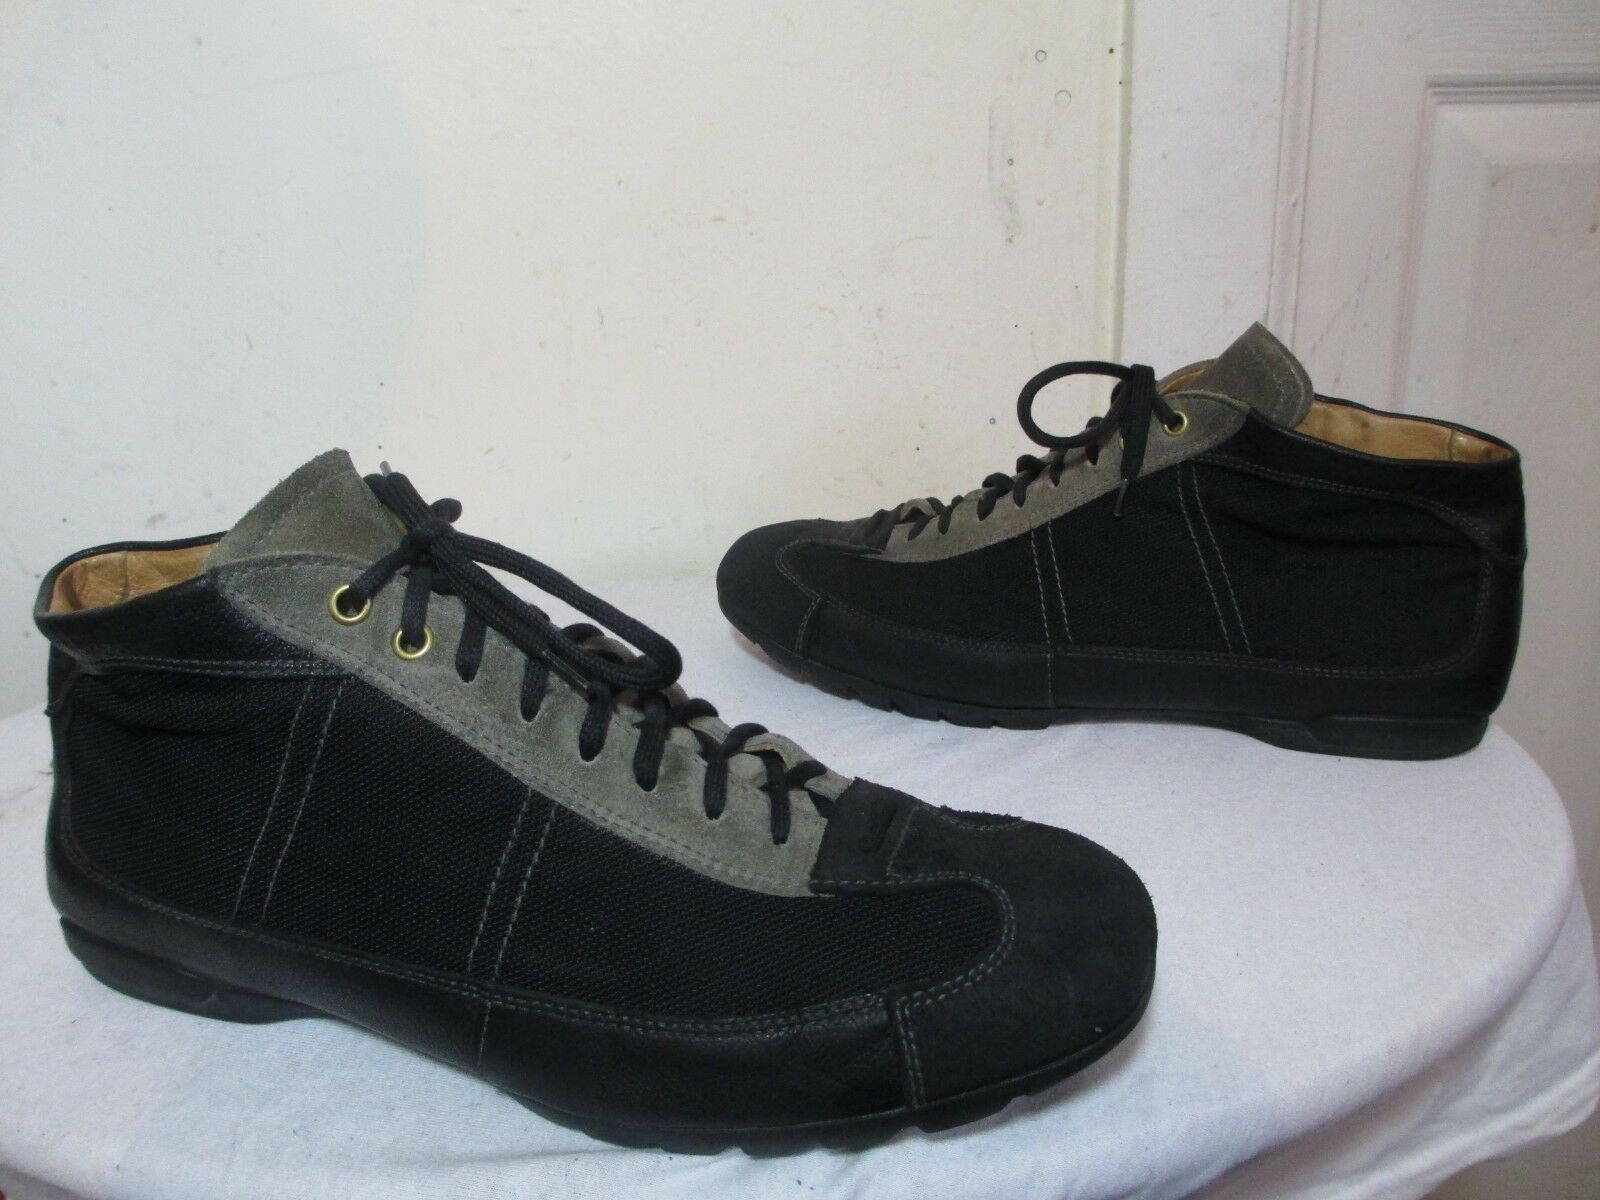 THE ORIGINAL CAR SHOES BLACK LEATHER/NYLON MADE IN ITALY MARKED SIZE 8